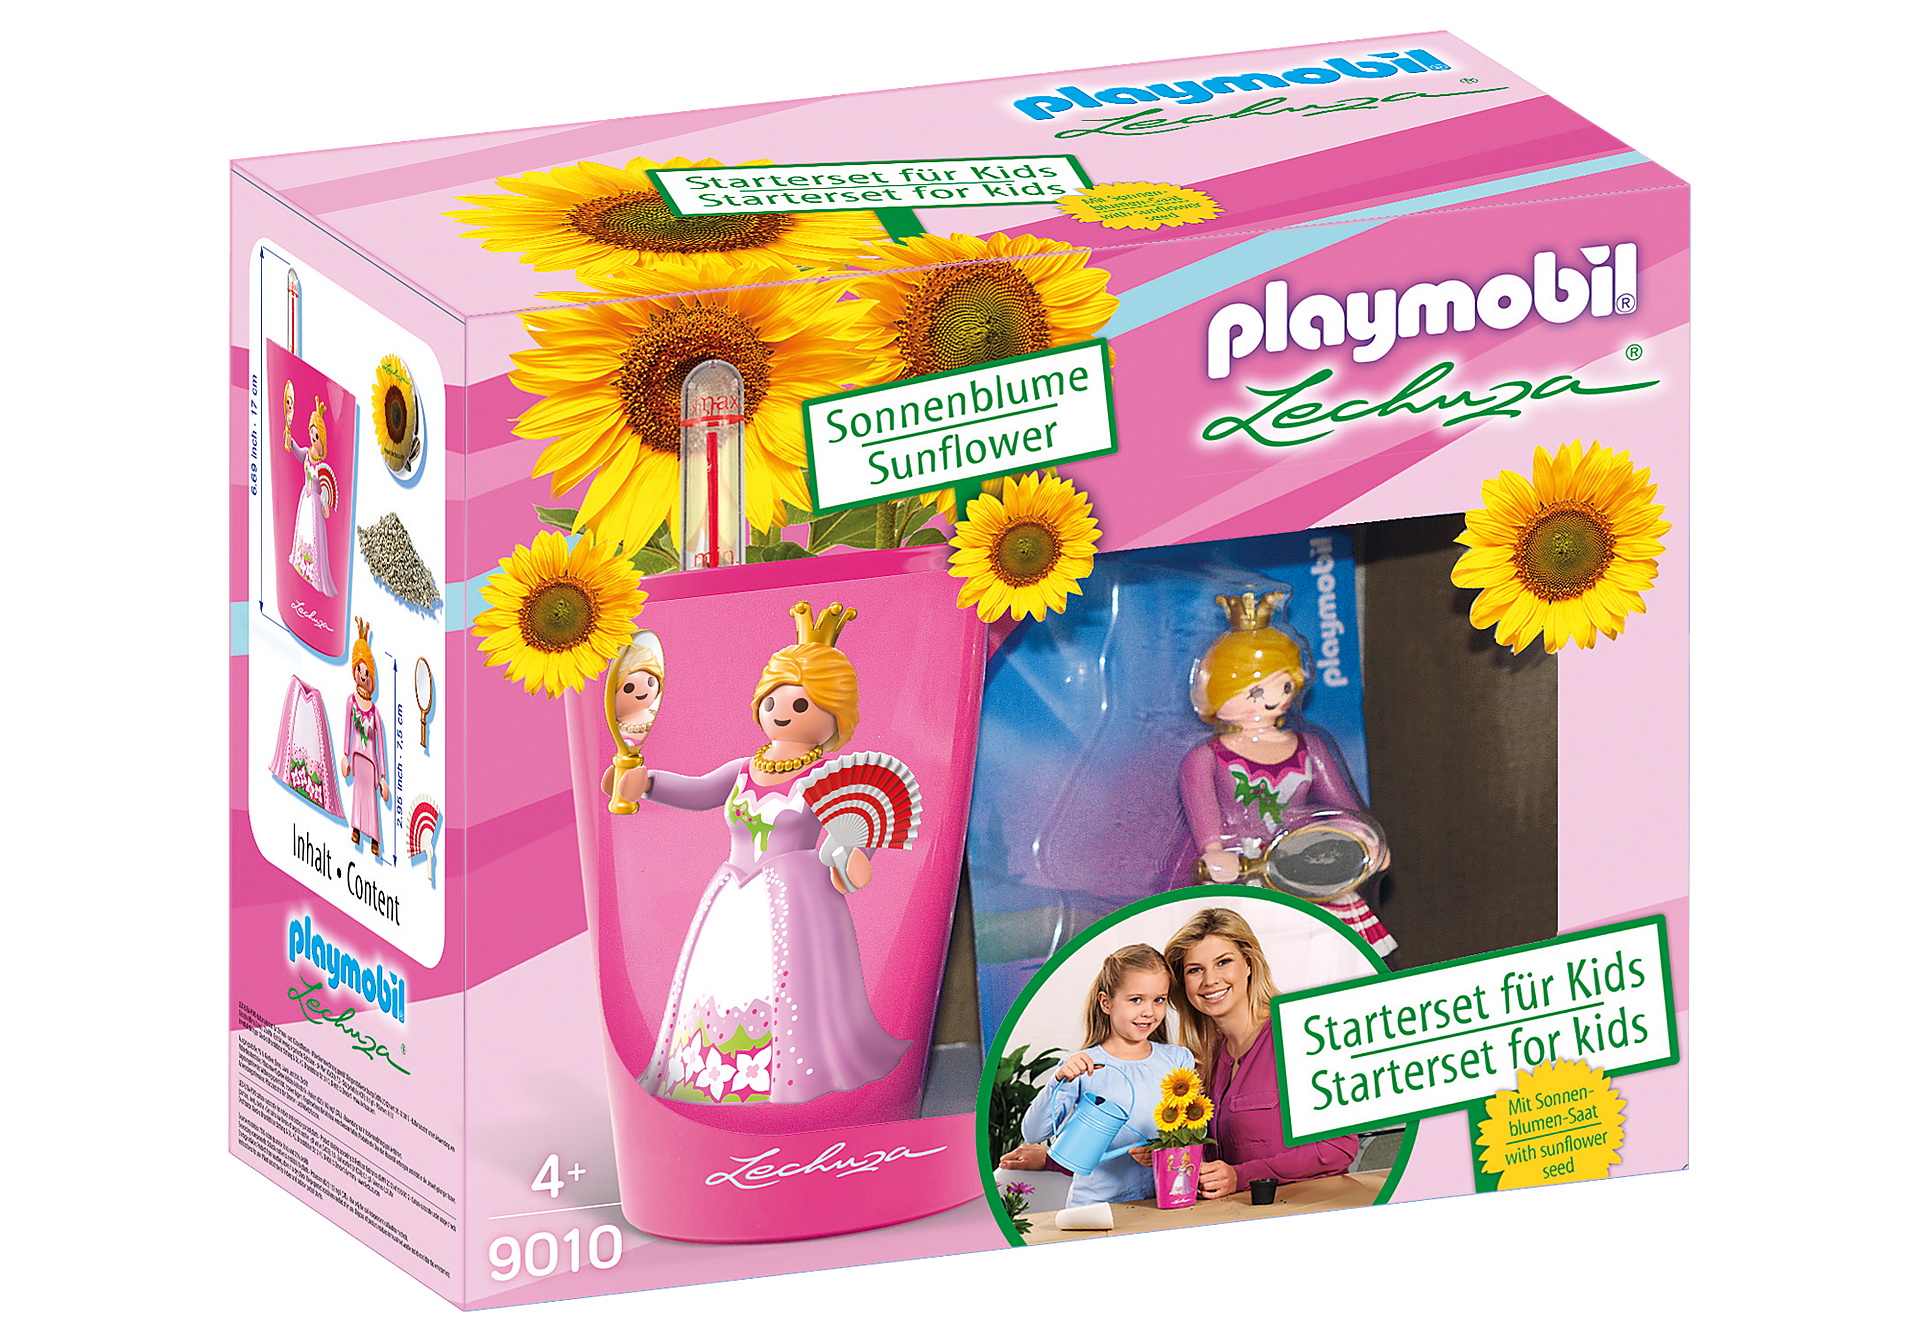 http://media.playmobil.com/i/playmobil/9010_product_box_front/Mini Deltini Start Set Prinzessin